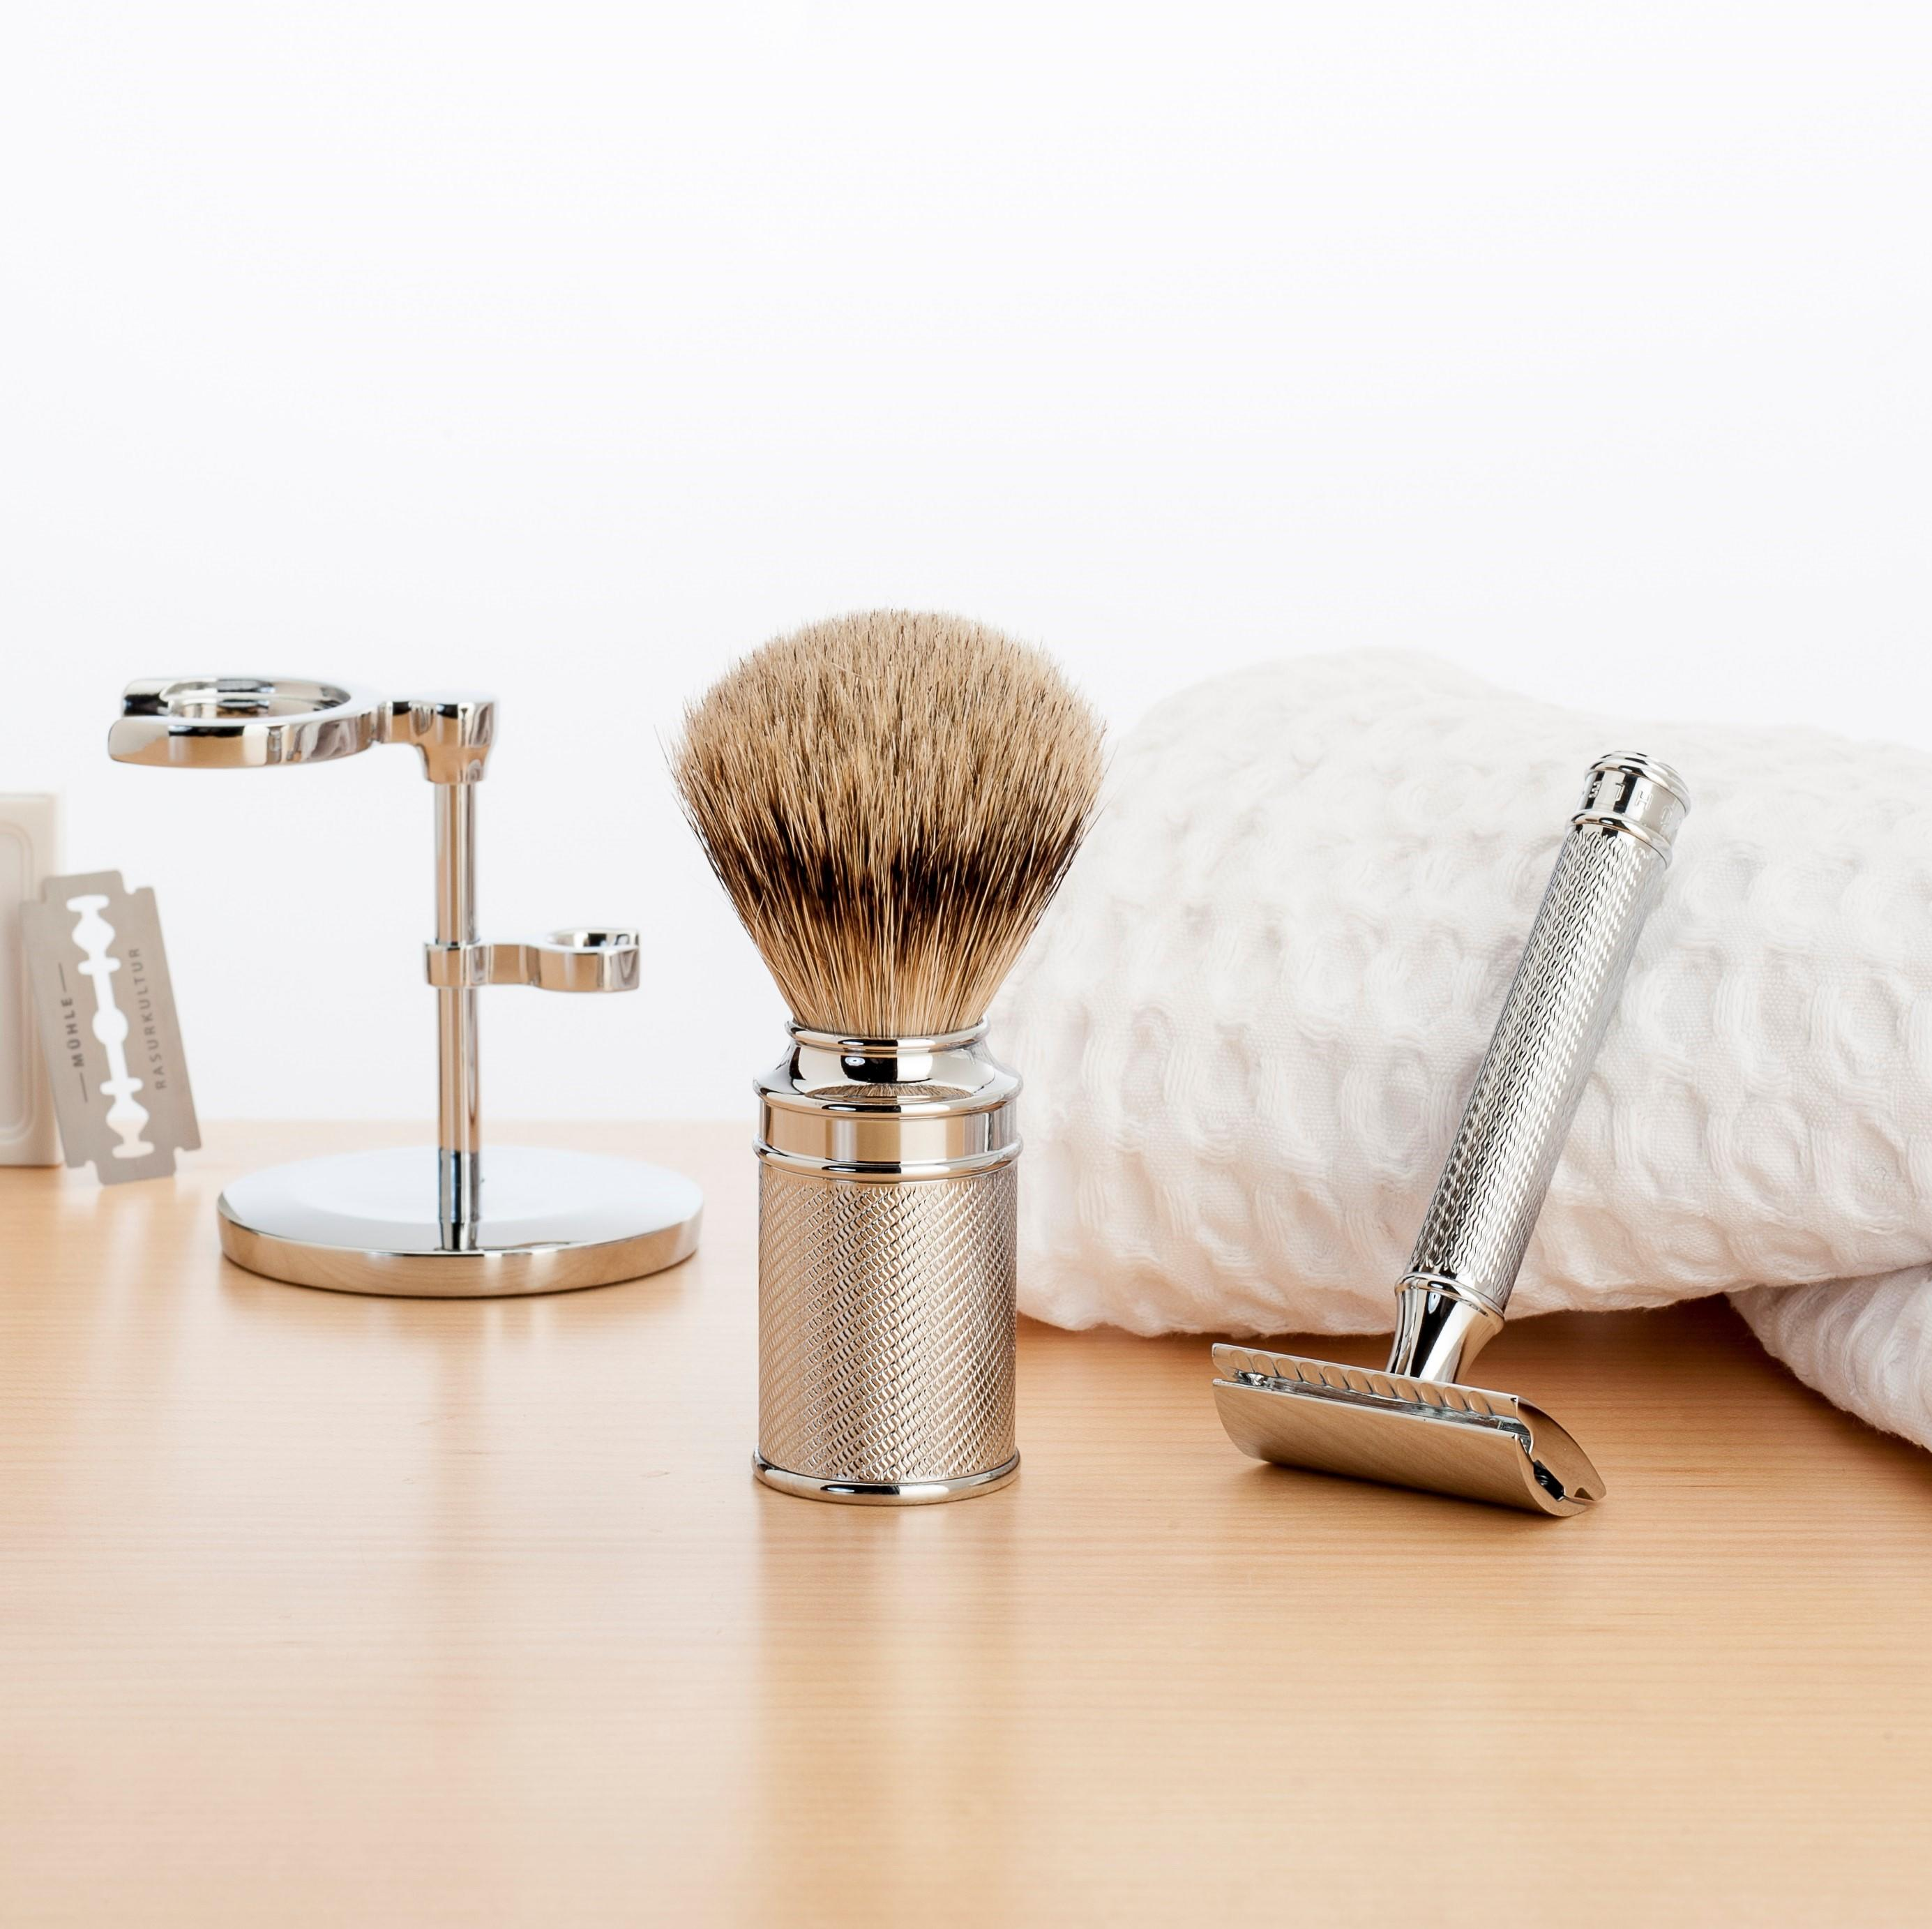 The MÜHLE Waffle Pique Towels with the iconic TRADITIONAL range including blades, Brush & Razor Stand, Silvertip Badger Chrome Shaving Brush and R89